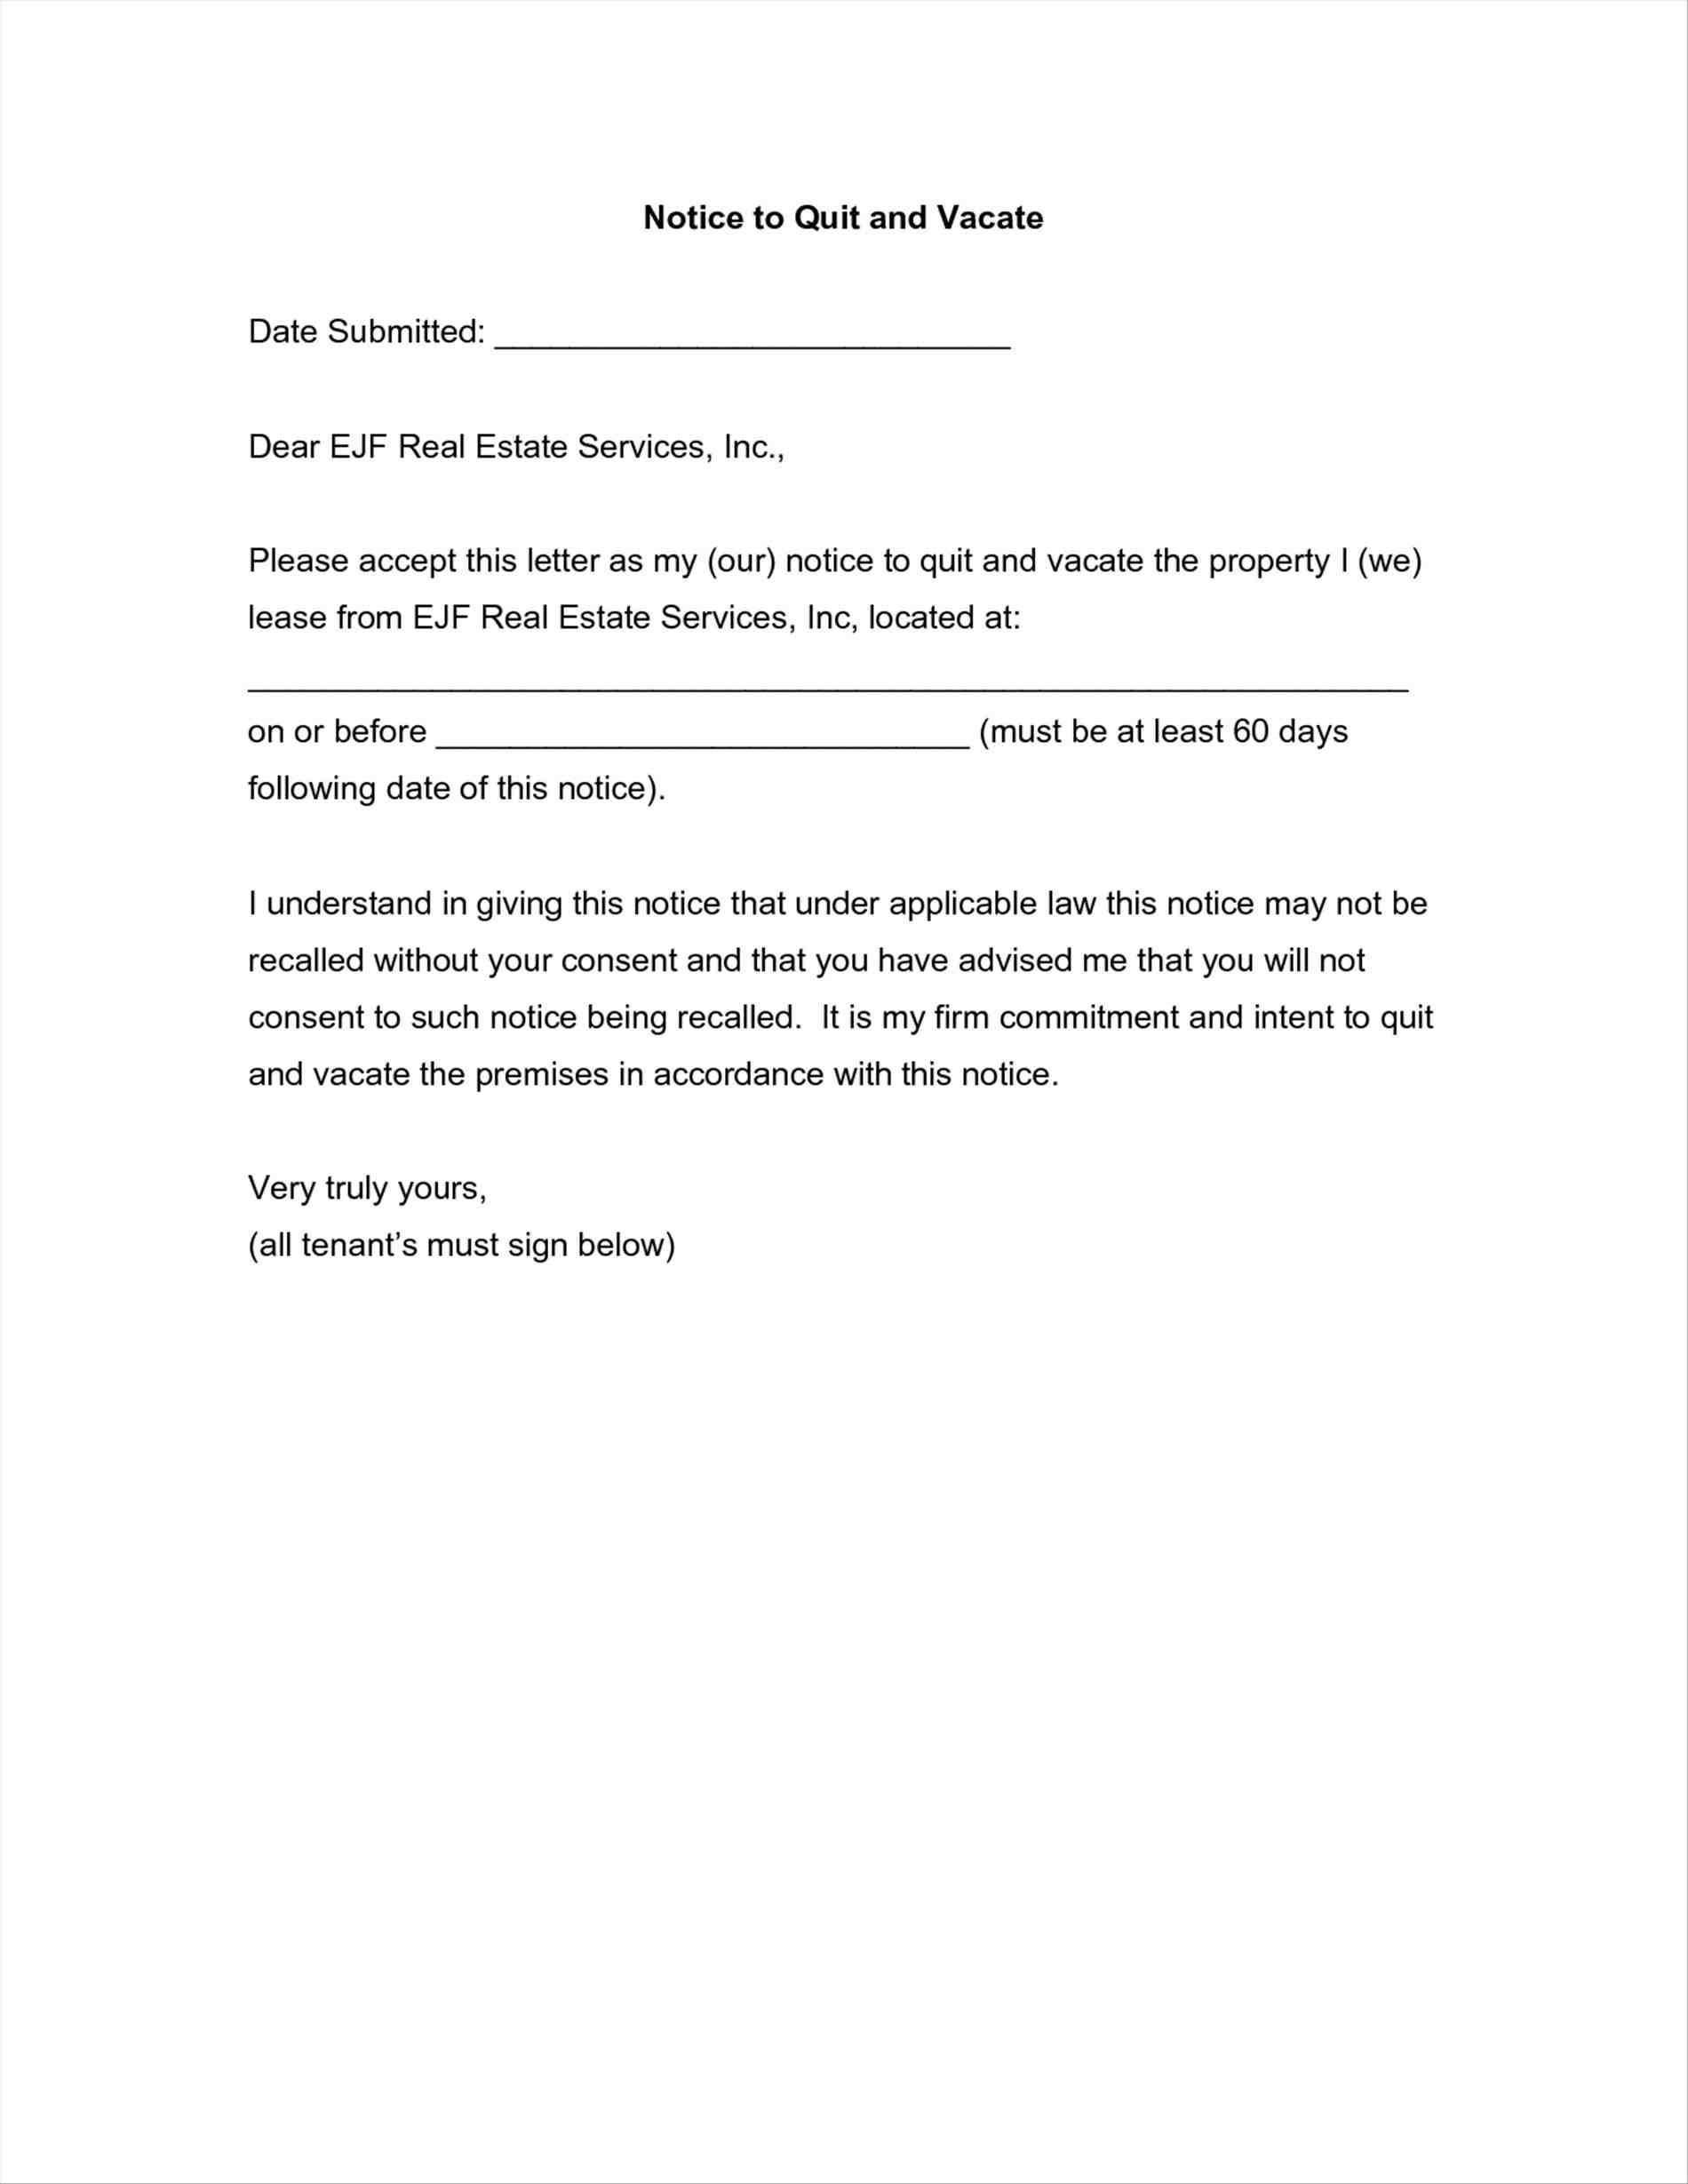 Intent to Vacate Letter Template - 60 Day Notice Apartment Template